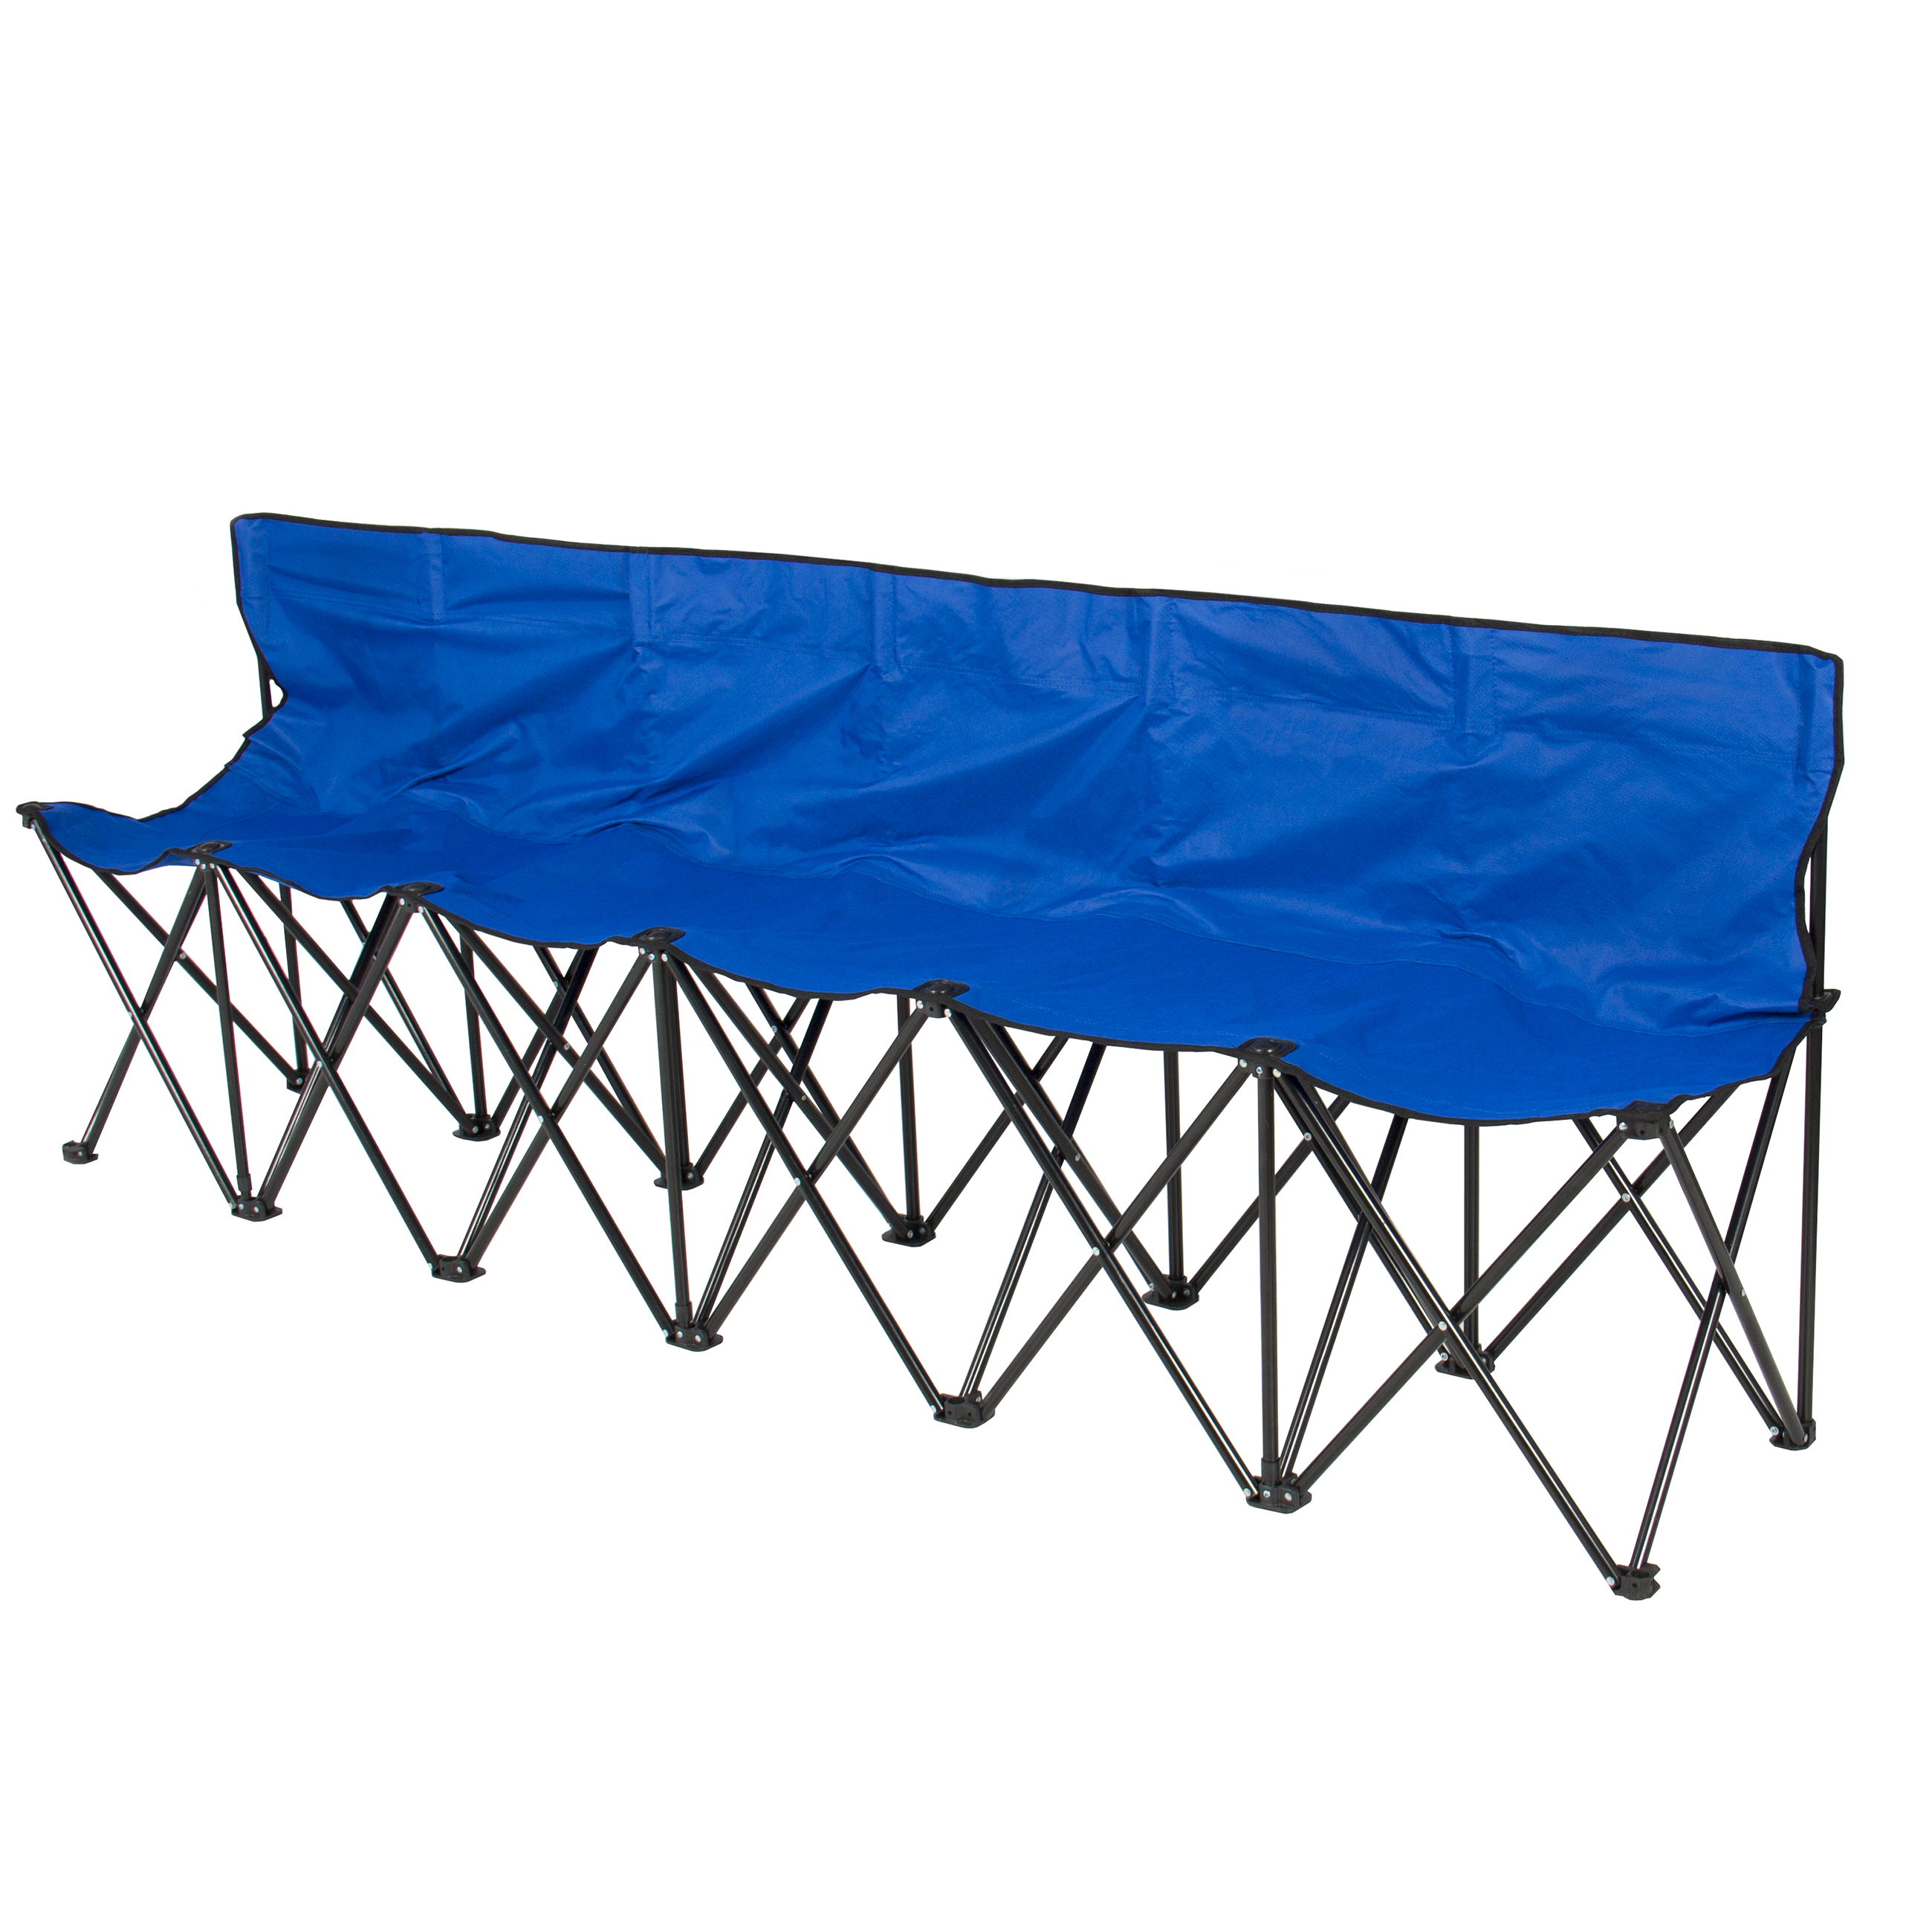 Best Choice Products 6 Seat Portable Folding Bench For Camping Sports Sideline W Steel Frame Carry Case Blue